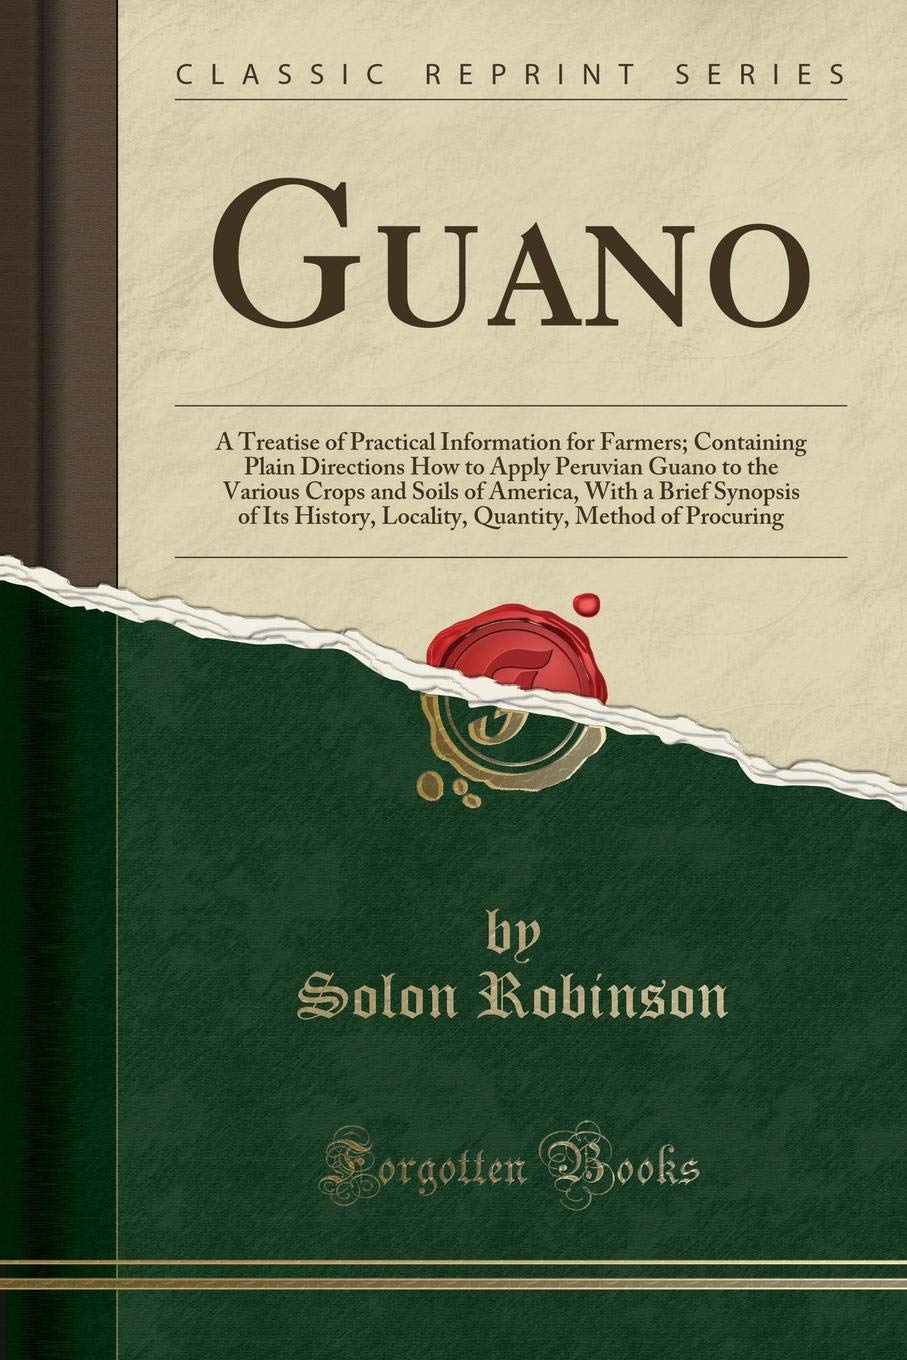 Download Guano: A Treatise of Practical Information for Farmers; Containing Plain Directions How to Apply Peruvian Guano to the Various Crops and Soils of ... Method of Procuring (Classic Reprint) ebook